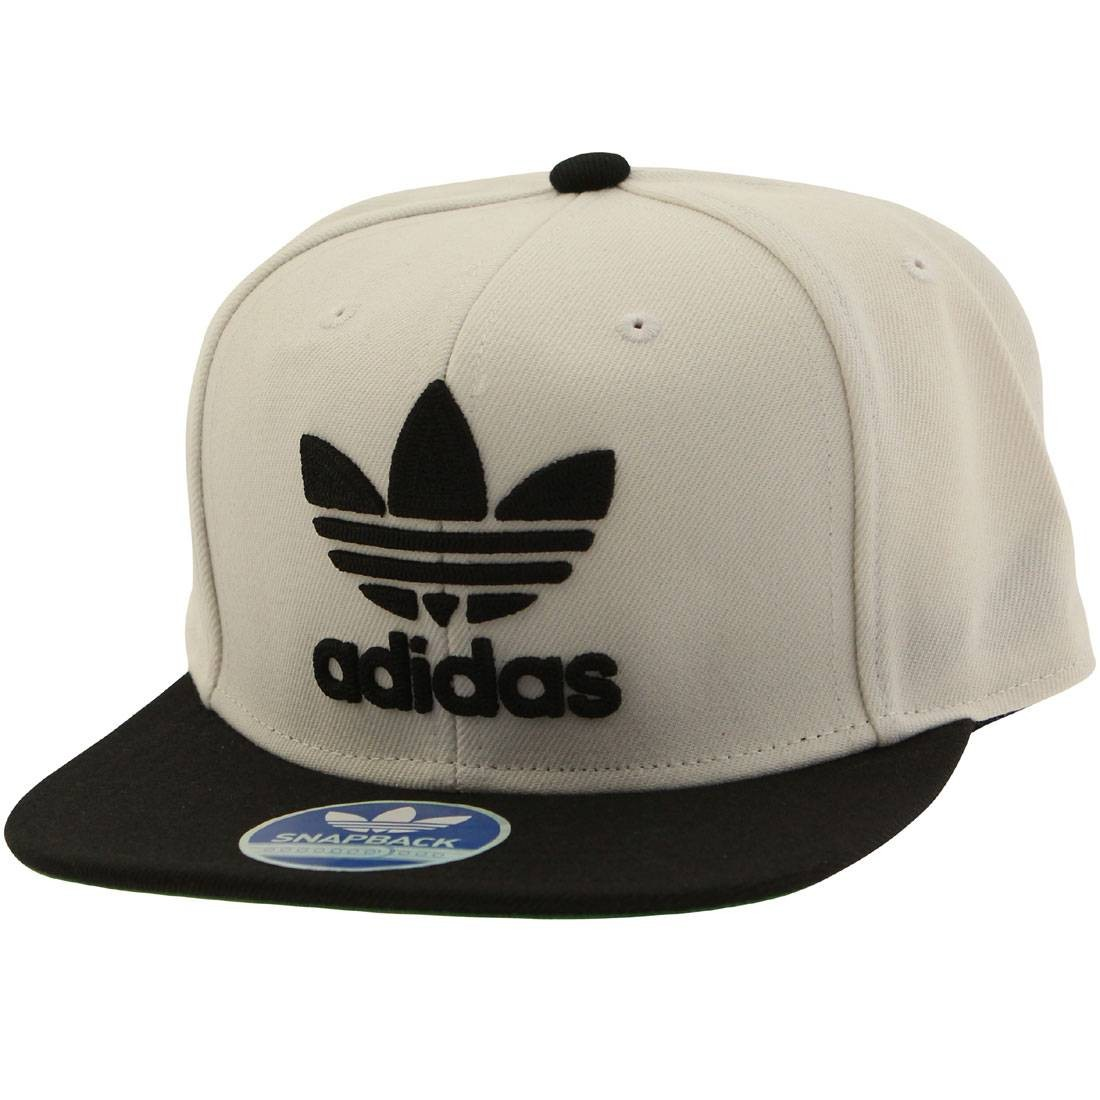 Adidas Originals Thrasher Chain Snapback white black a66e37d9f0b